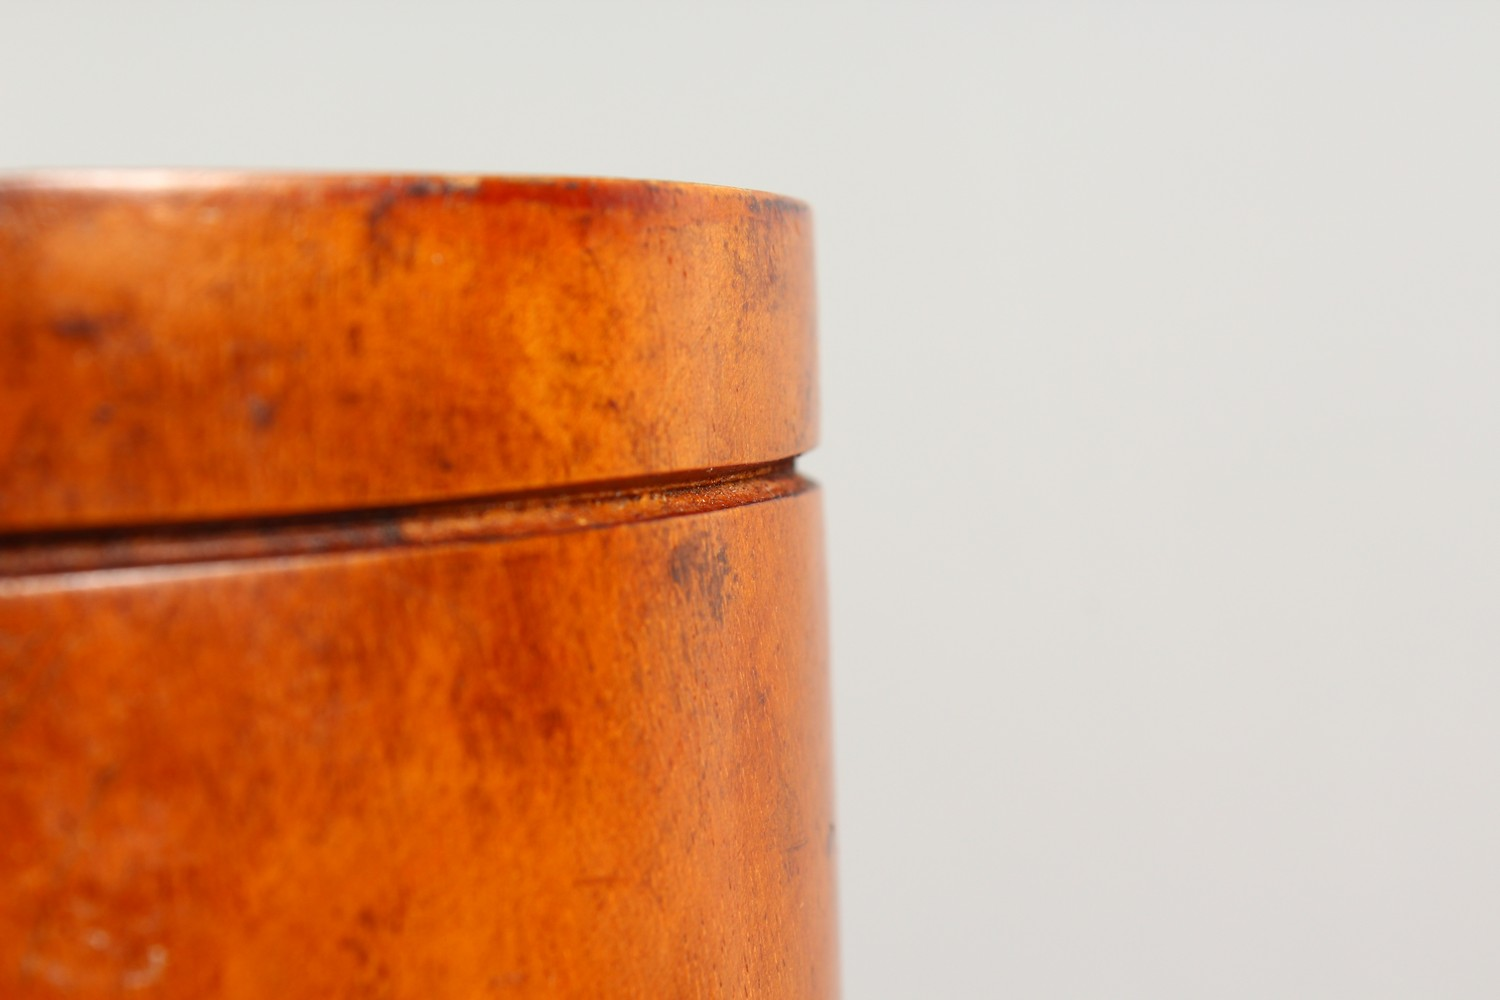 Lot 1513 - A 19TH/20TH CENTURY PESTLE AND MORTAR, possibly sycamore. Mortar: 9ins high.